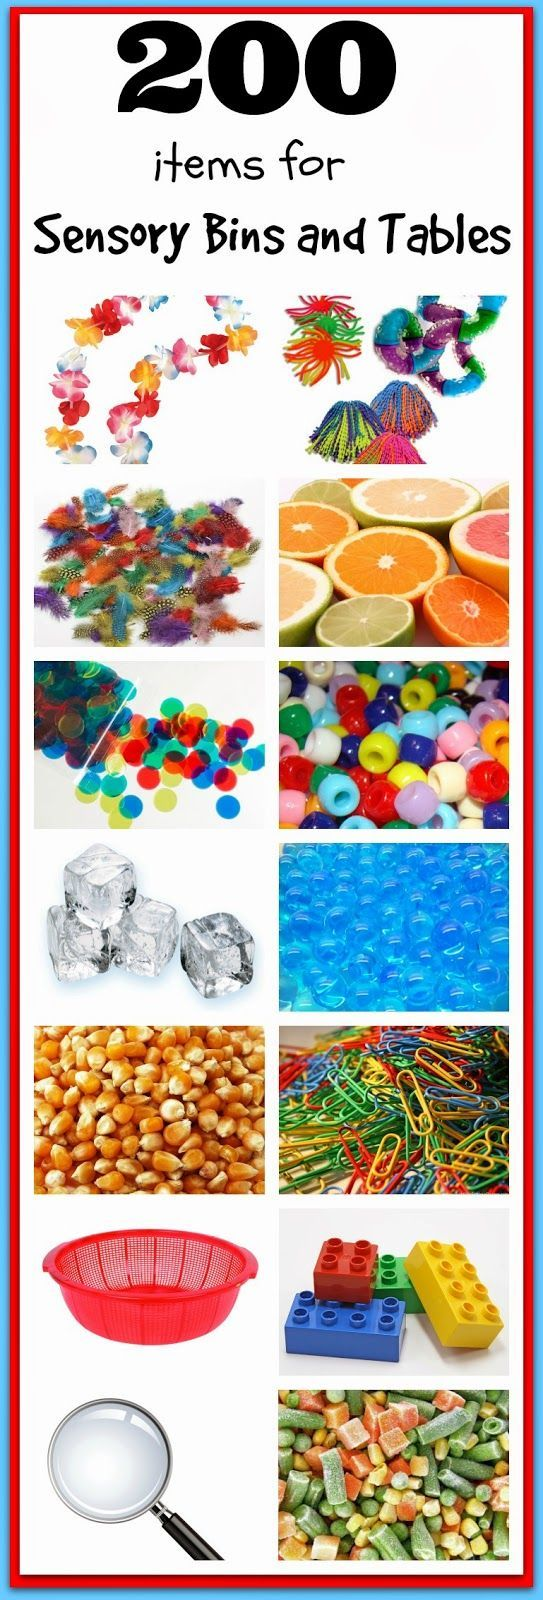 200 items for Sensory Bins and Sensory Tables {This is a GREAT list that will give you ideas to last all school year long!}